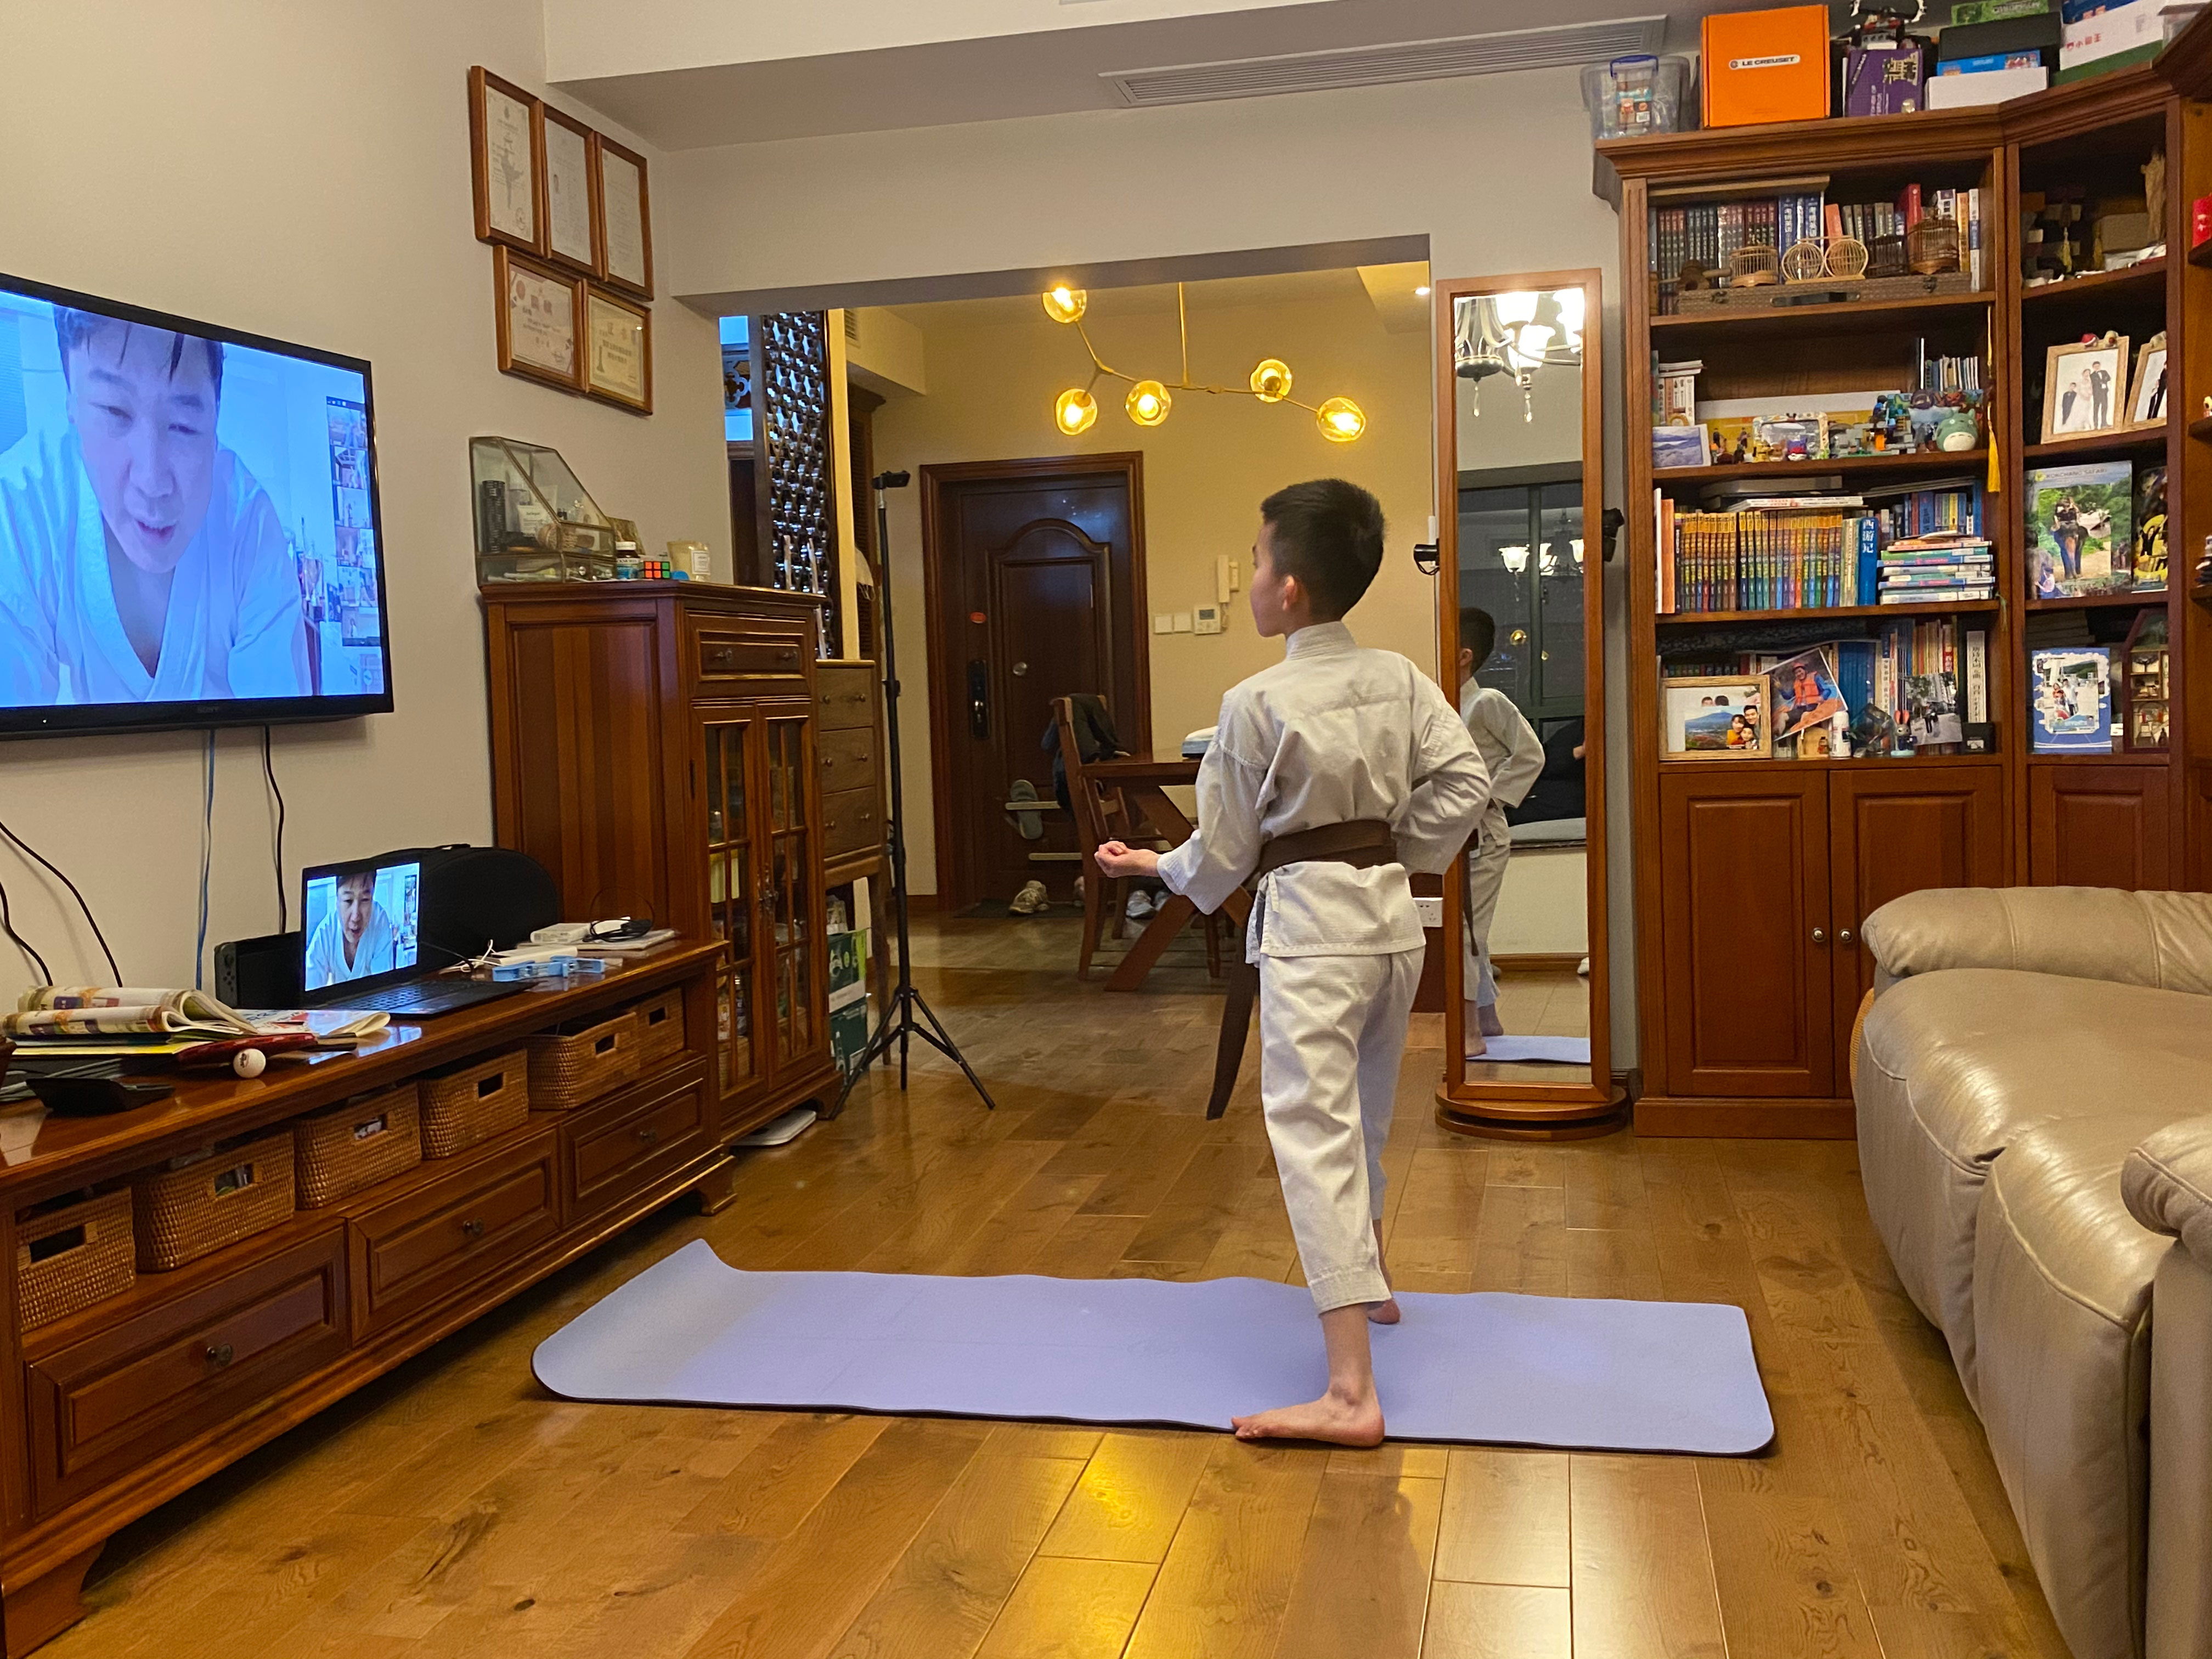 A child doing Karate in front of the TV